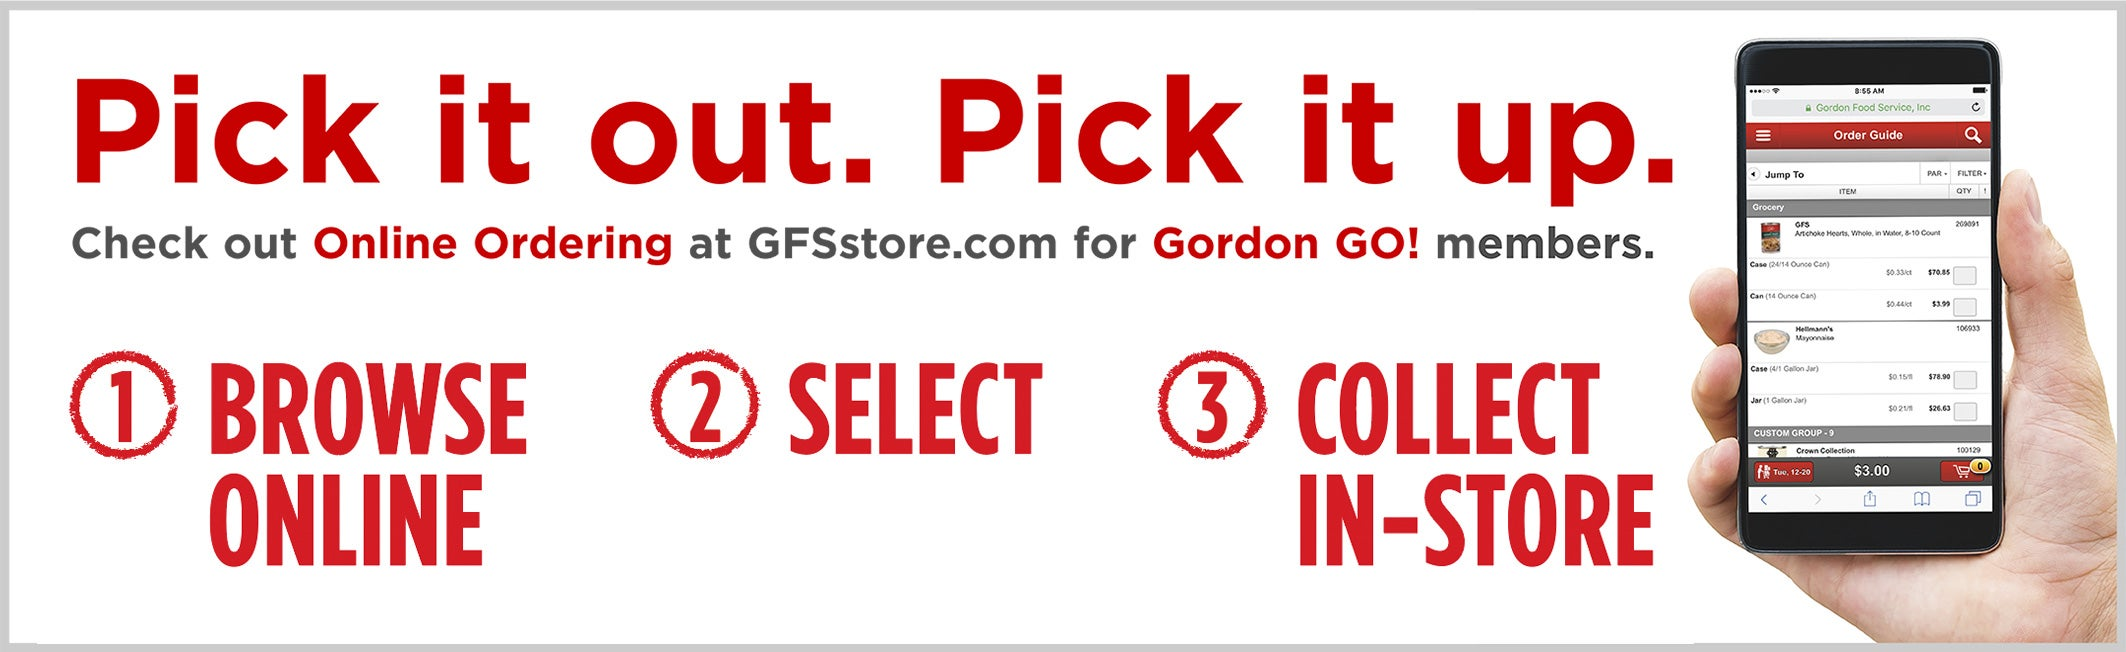 Online Ordering Gordon Food Service Store - Maintenance invoice template free order online pickup in store